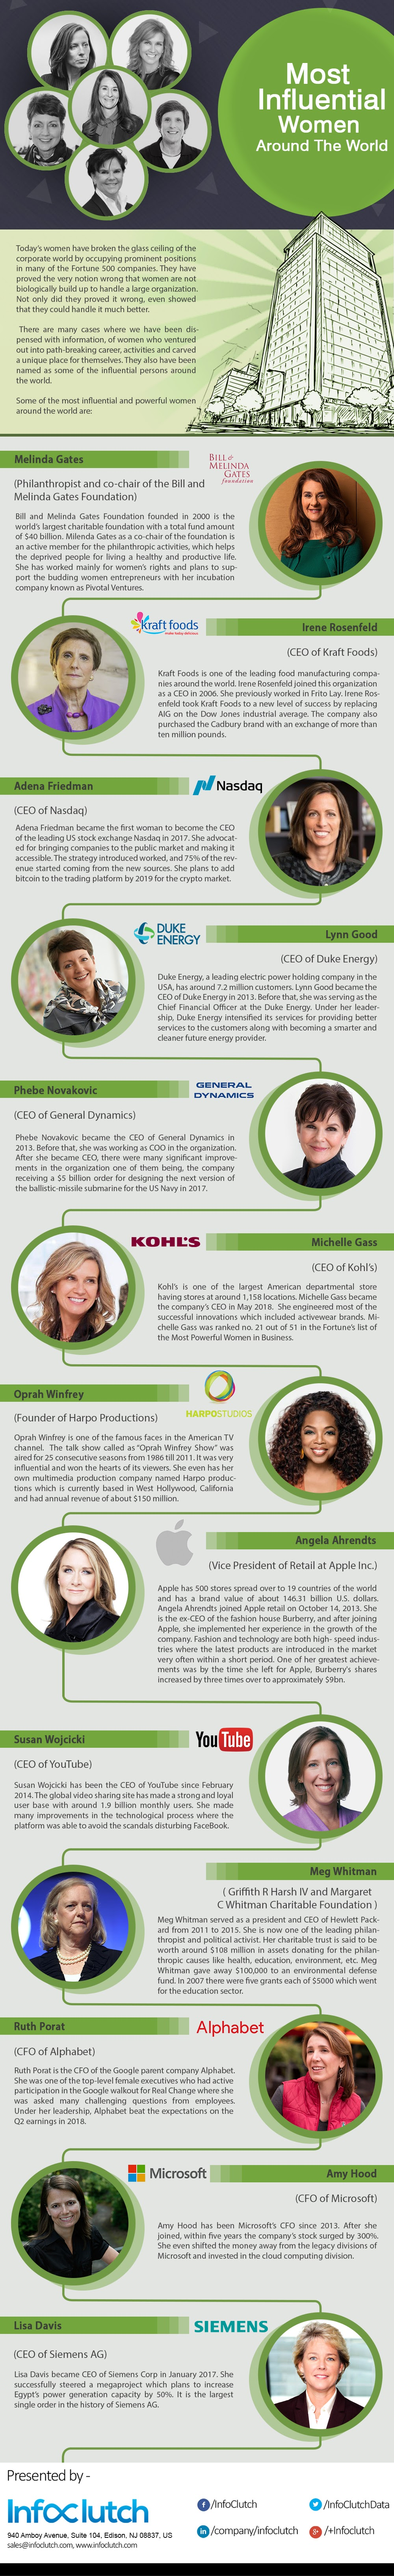 Most Influential Women Around The World #infographic